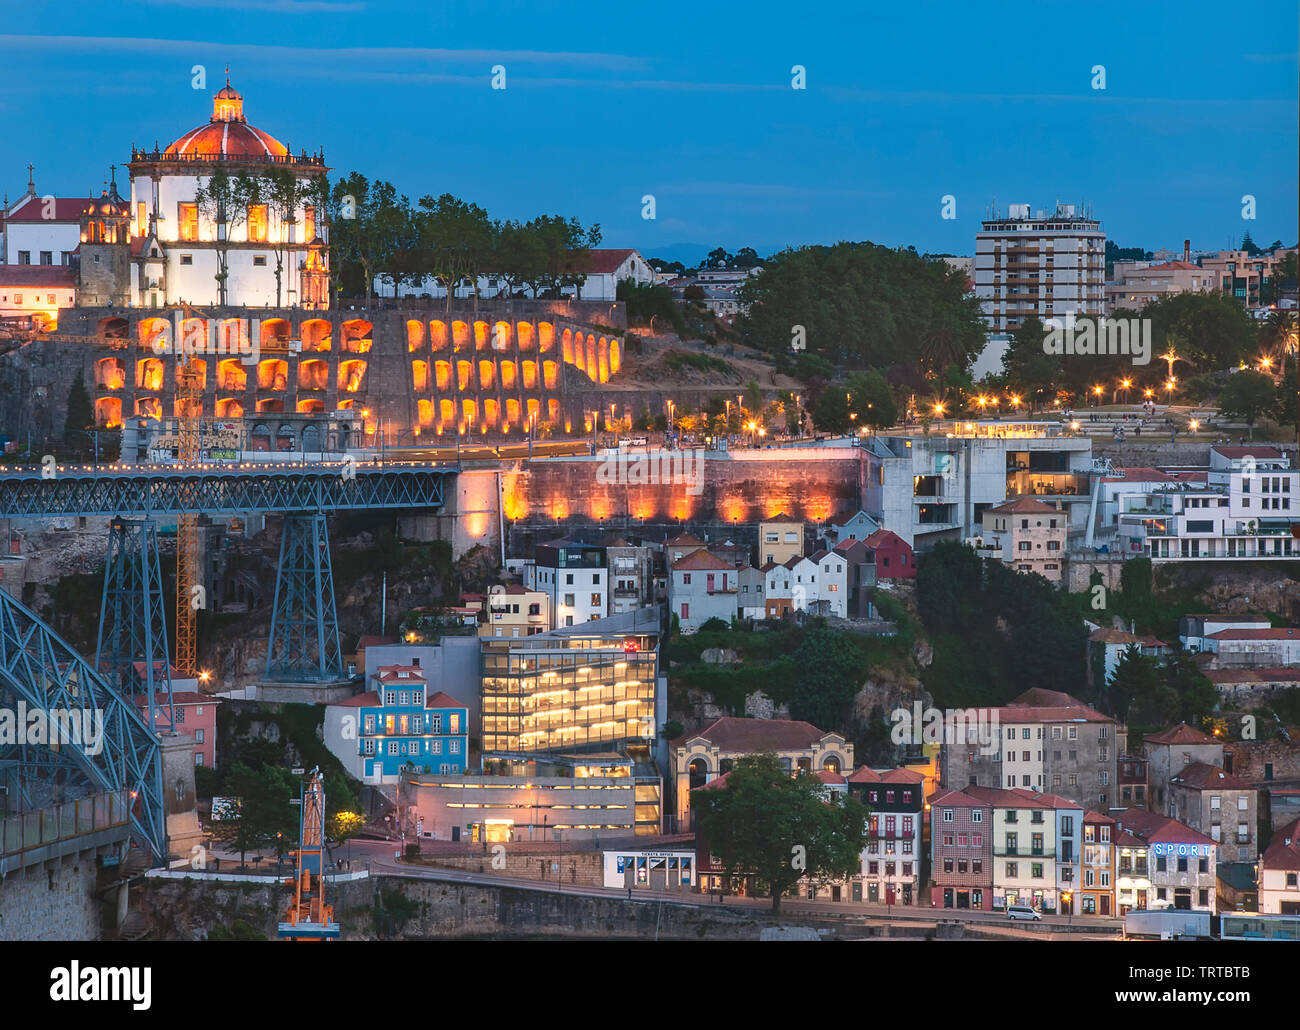 The Monastery of Serra do Pilar overlooking the Duoro River in Porto, Portugal - Stock Image